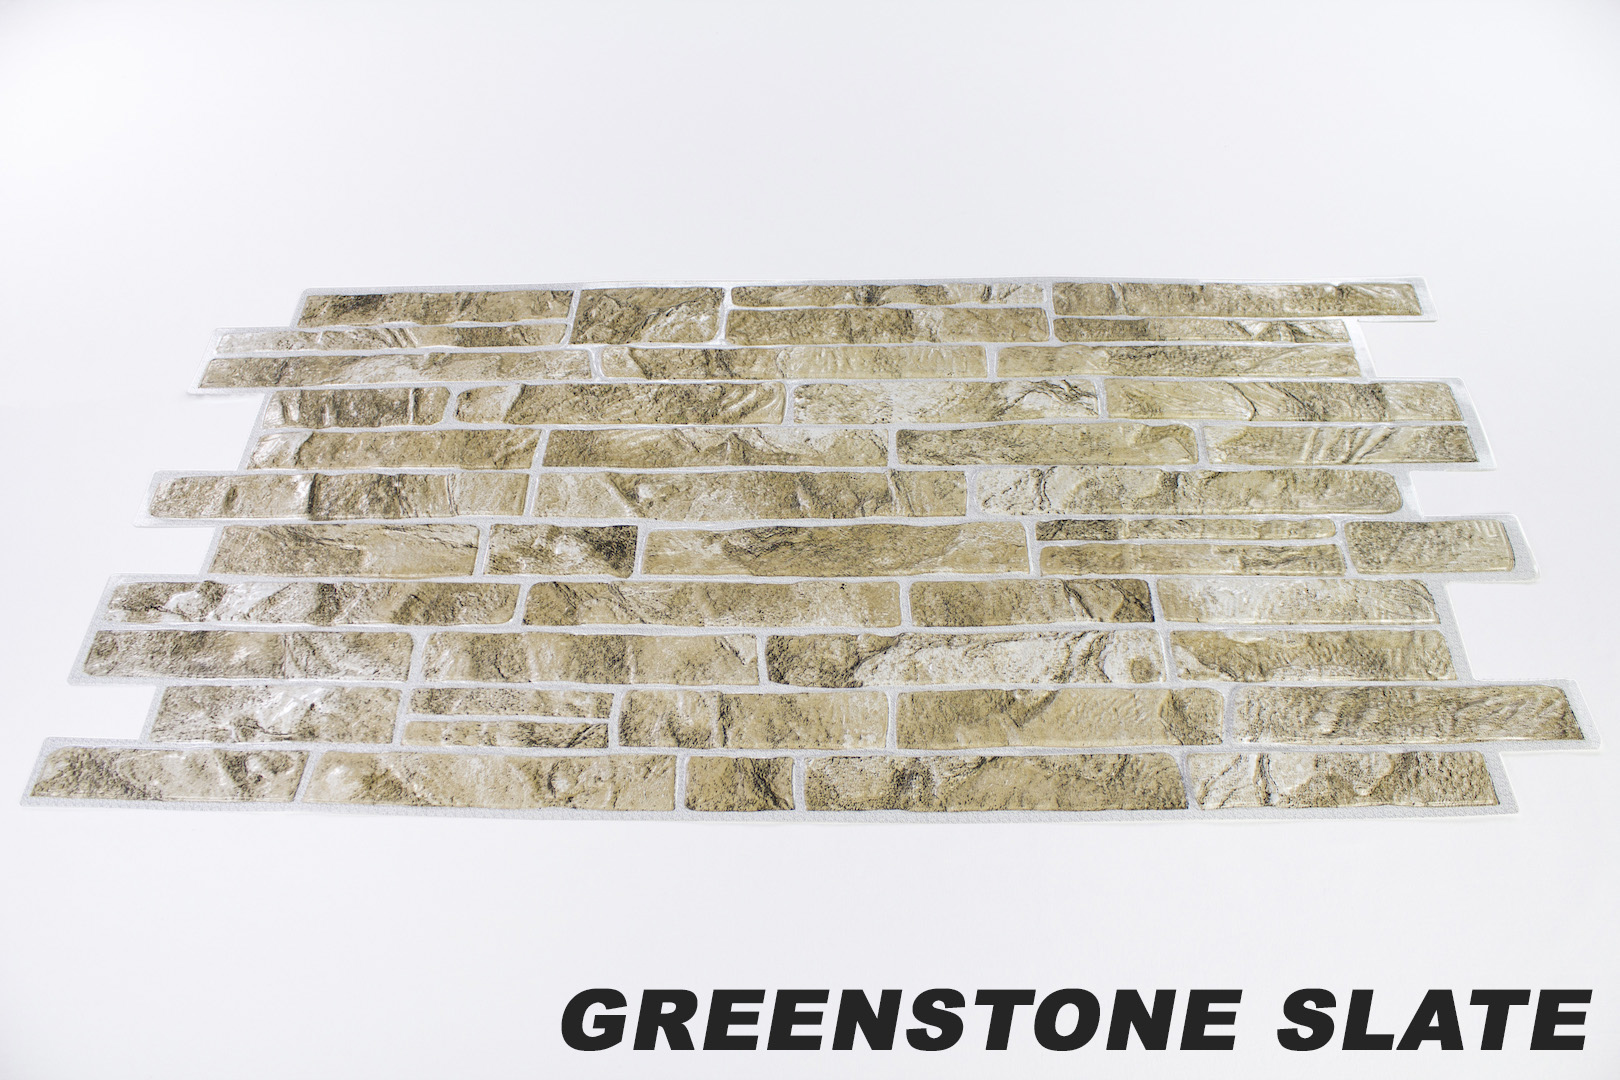 1 pvc dekorplatte mosaic wandverkleidung platten wand 95x48cm greenstone slate ebay. Black Bedroom Furniture Sets. Home Design Ideas